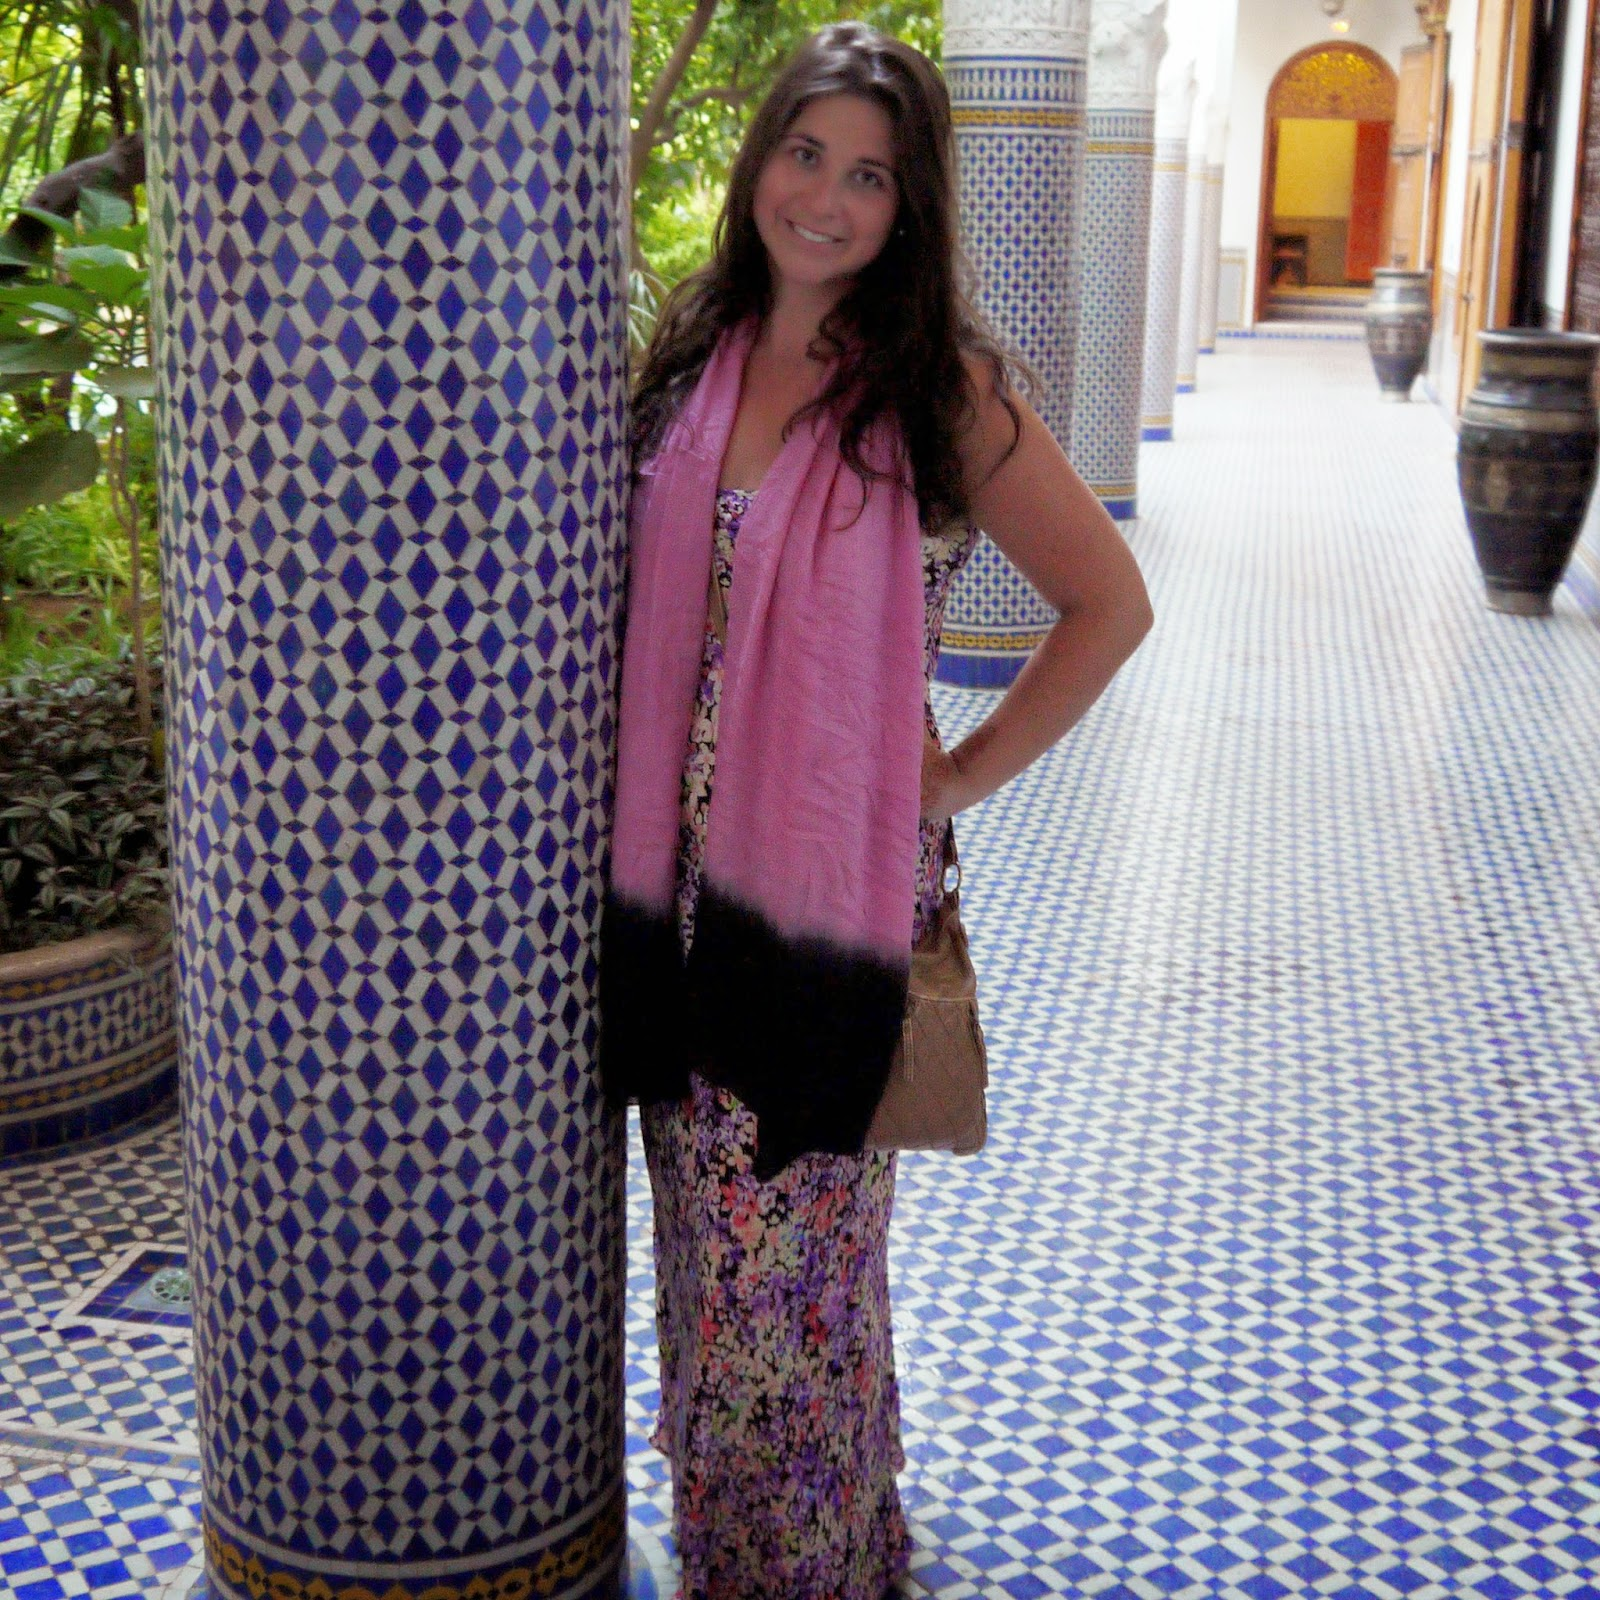 Travel Tips for women in Morocco